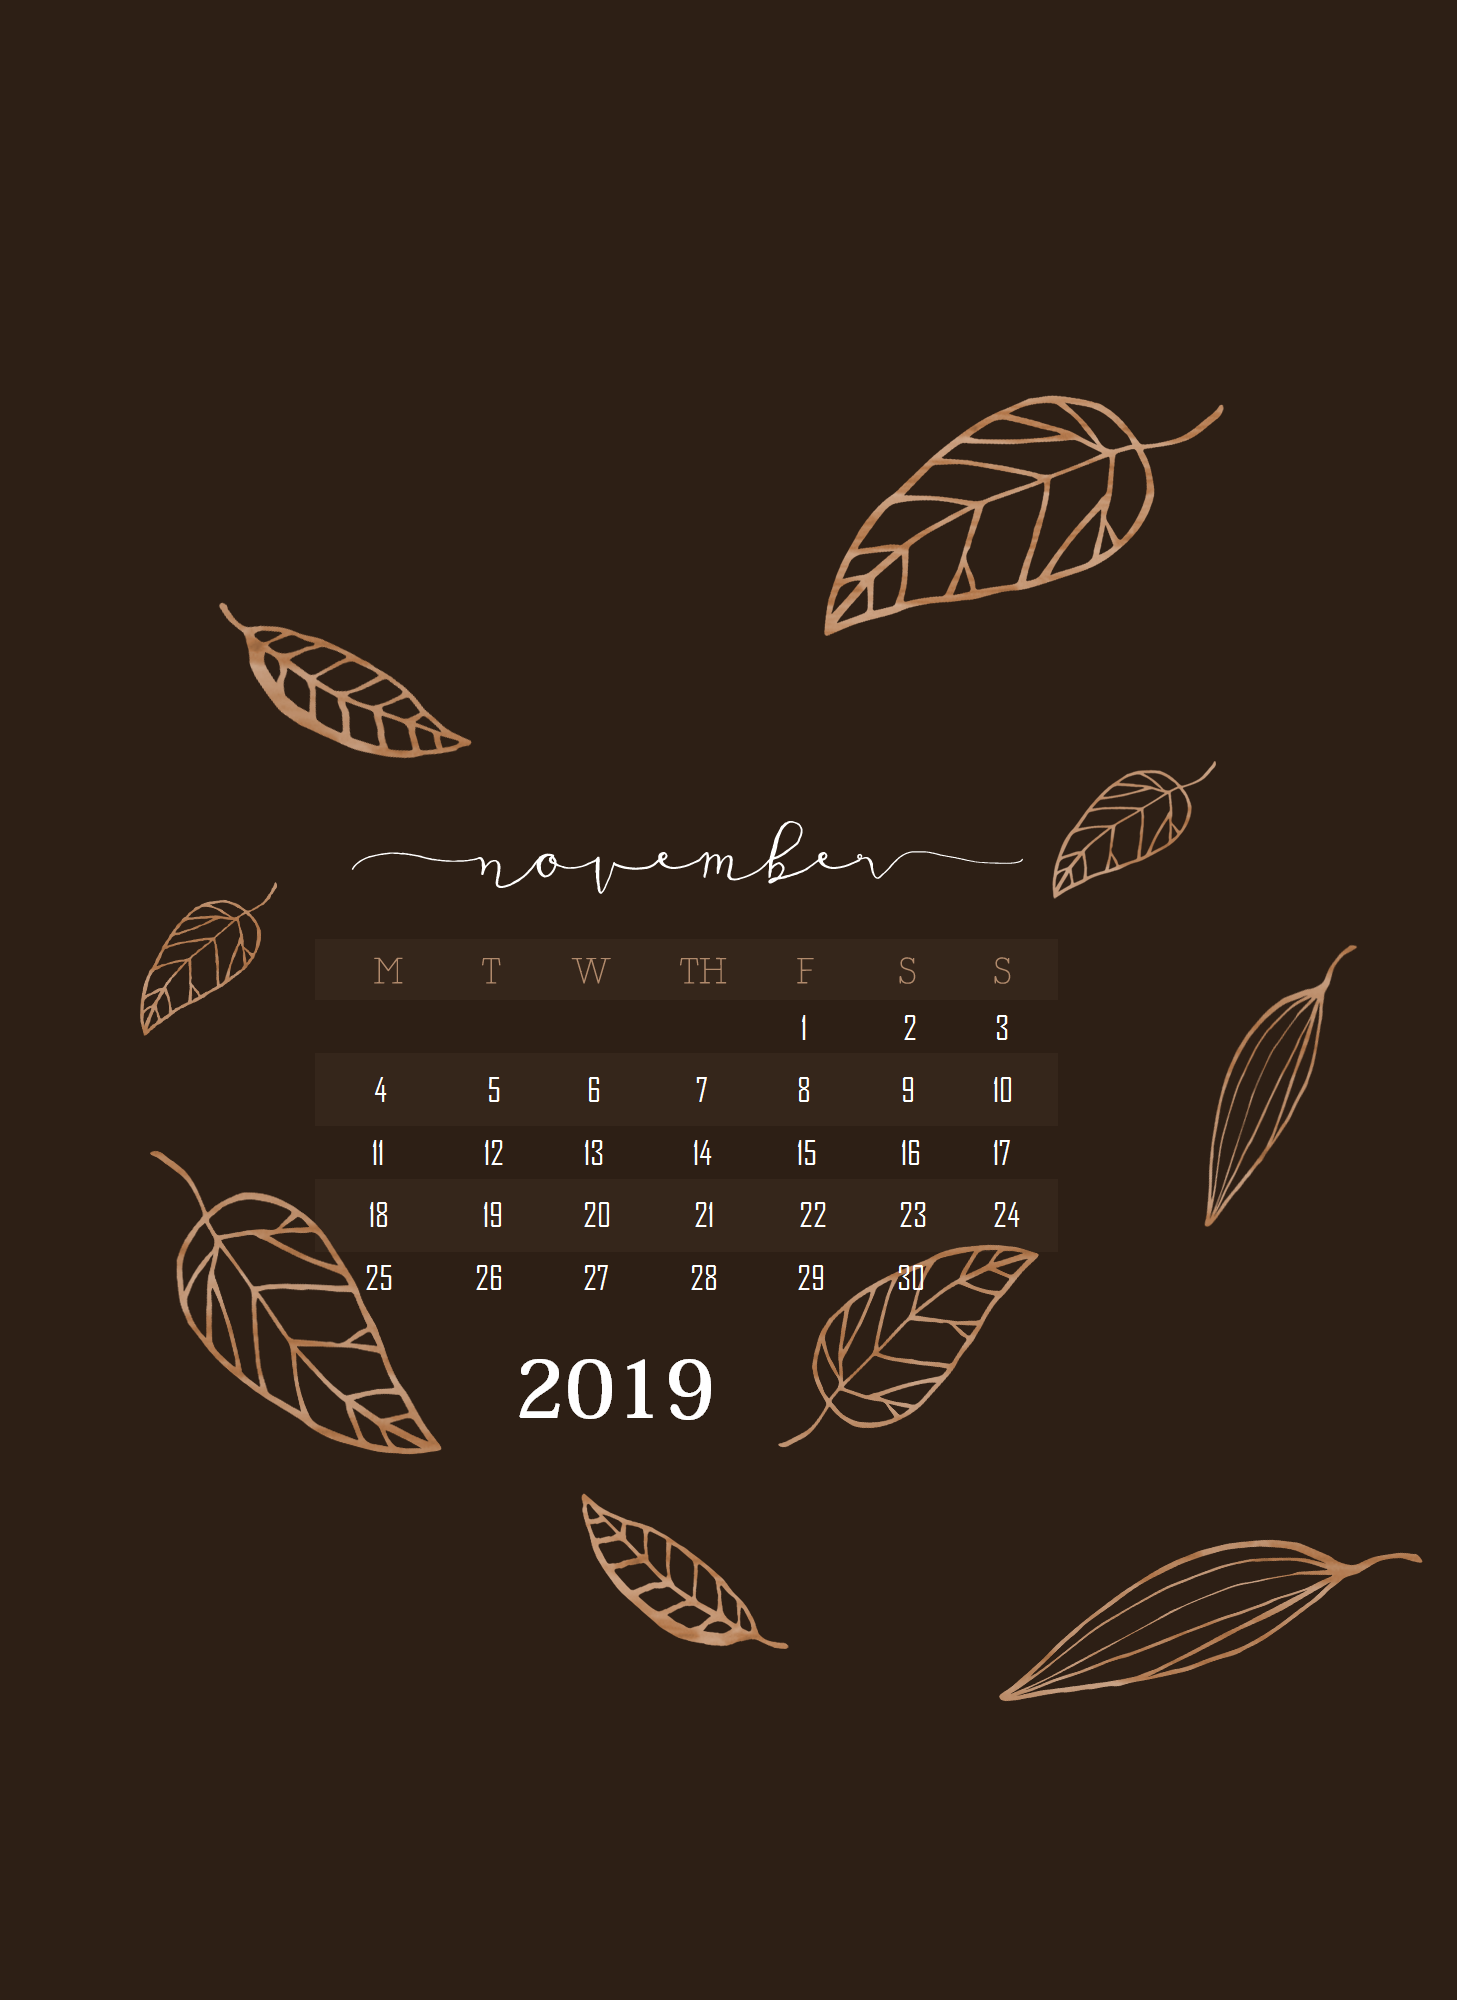 iPhone November 2019 Wallpaper Latest Calendar 1457x2000